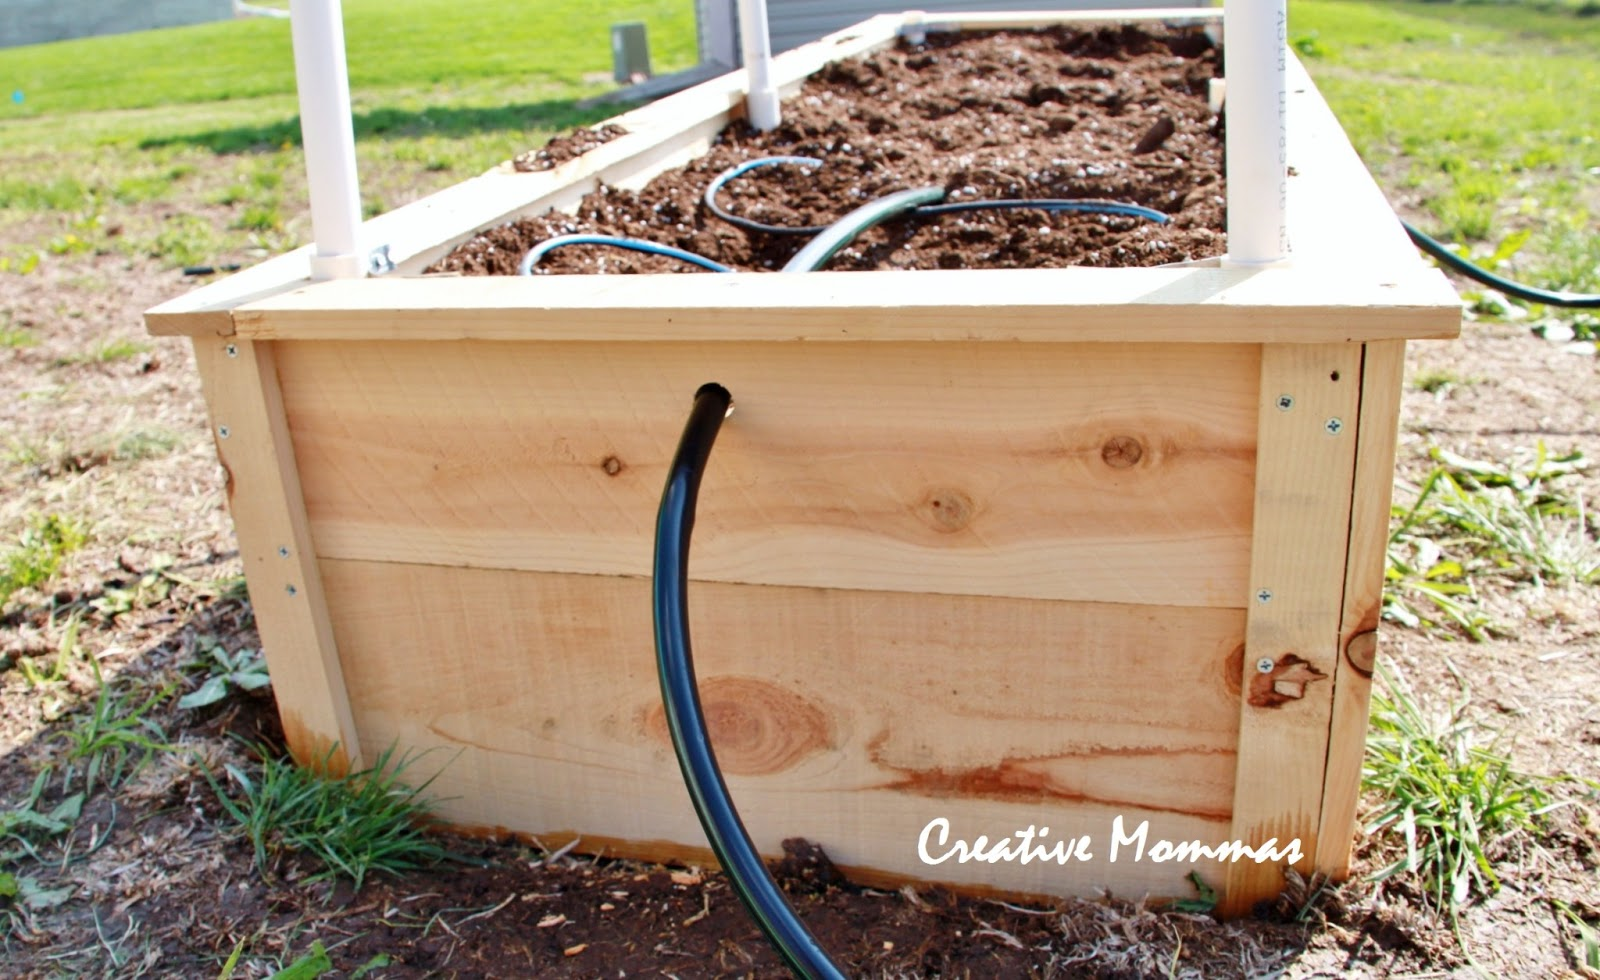 Ideas For Raised Garden Beds 55 cool creative ideas in raised bed gardening Garden Design With Designs For Raised Garden Beds Garden Tvwowco With Landscape Design Plan